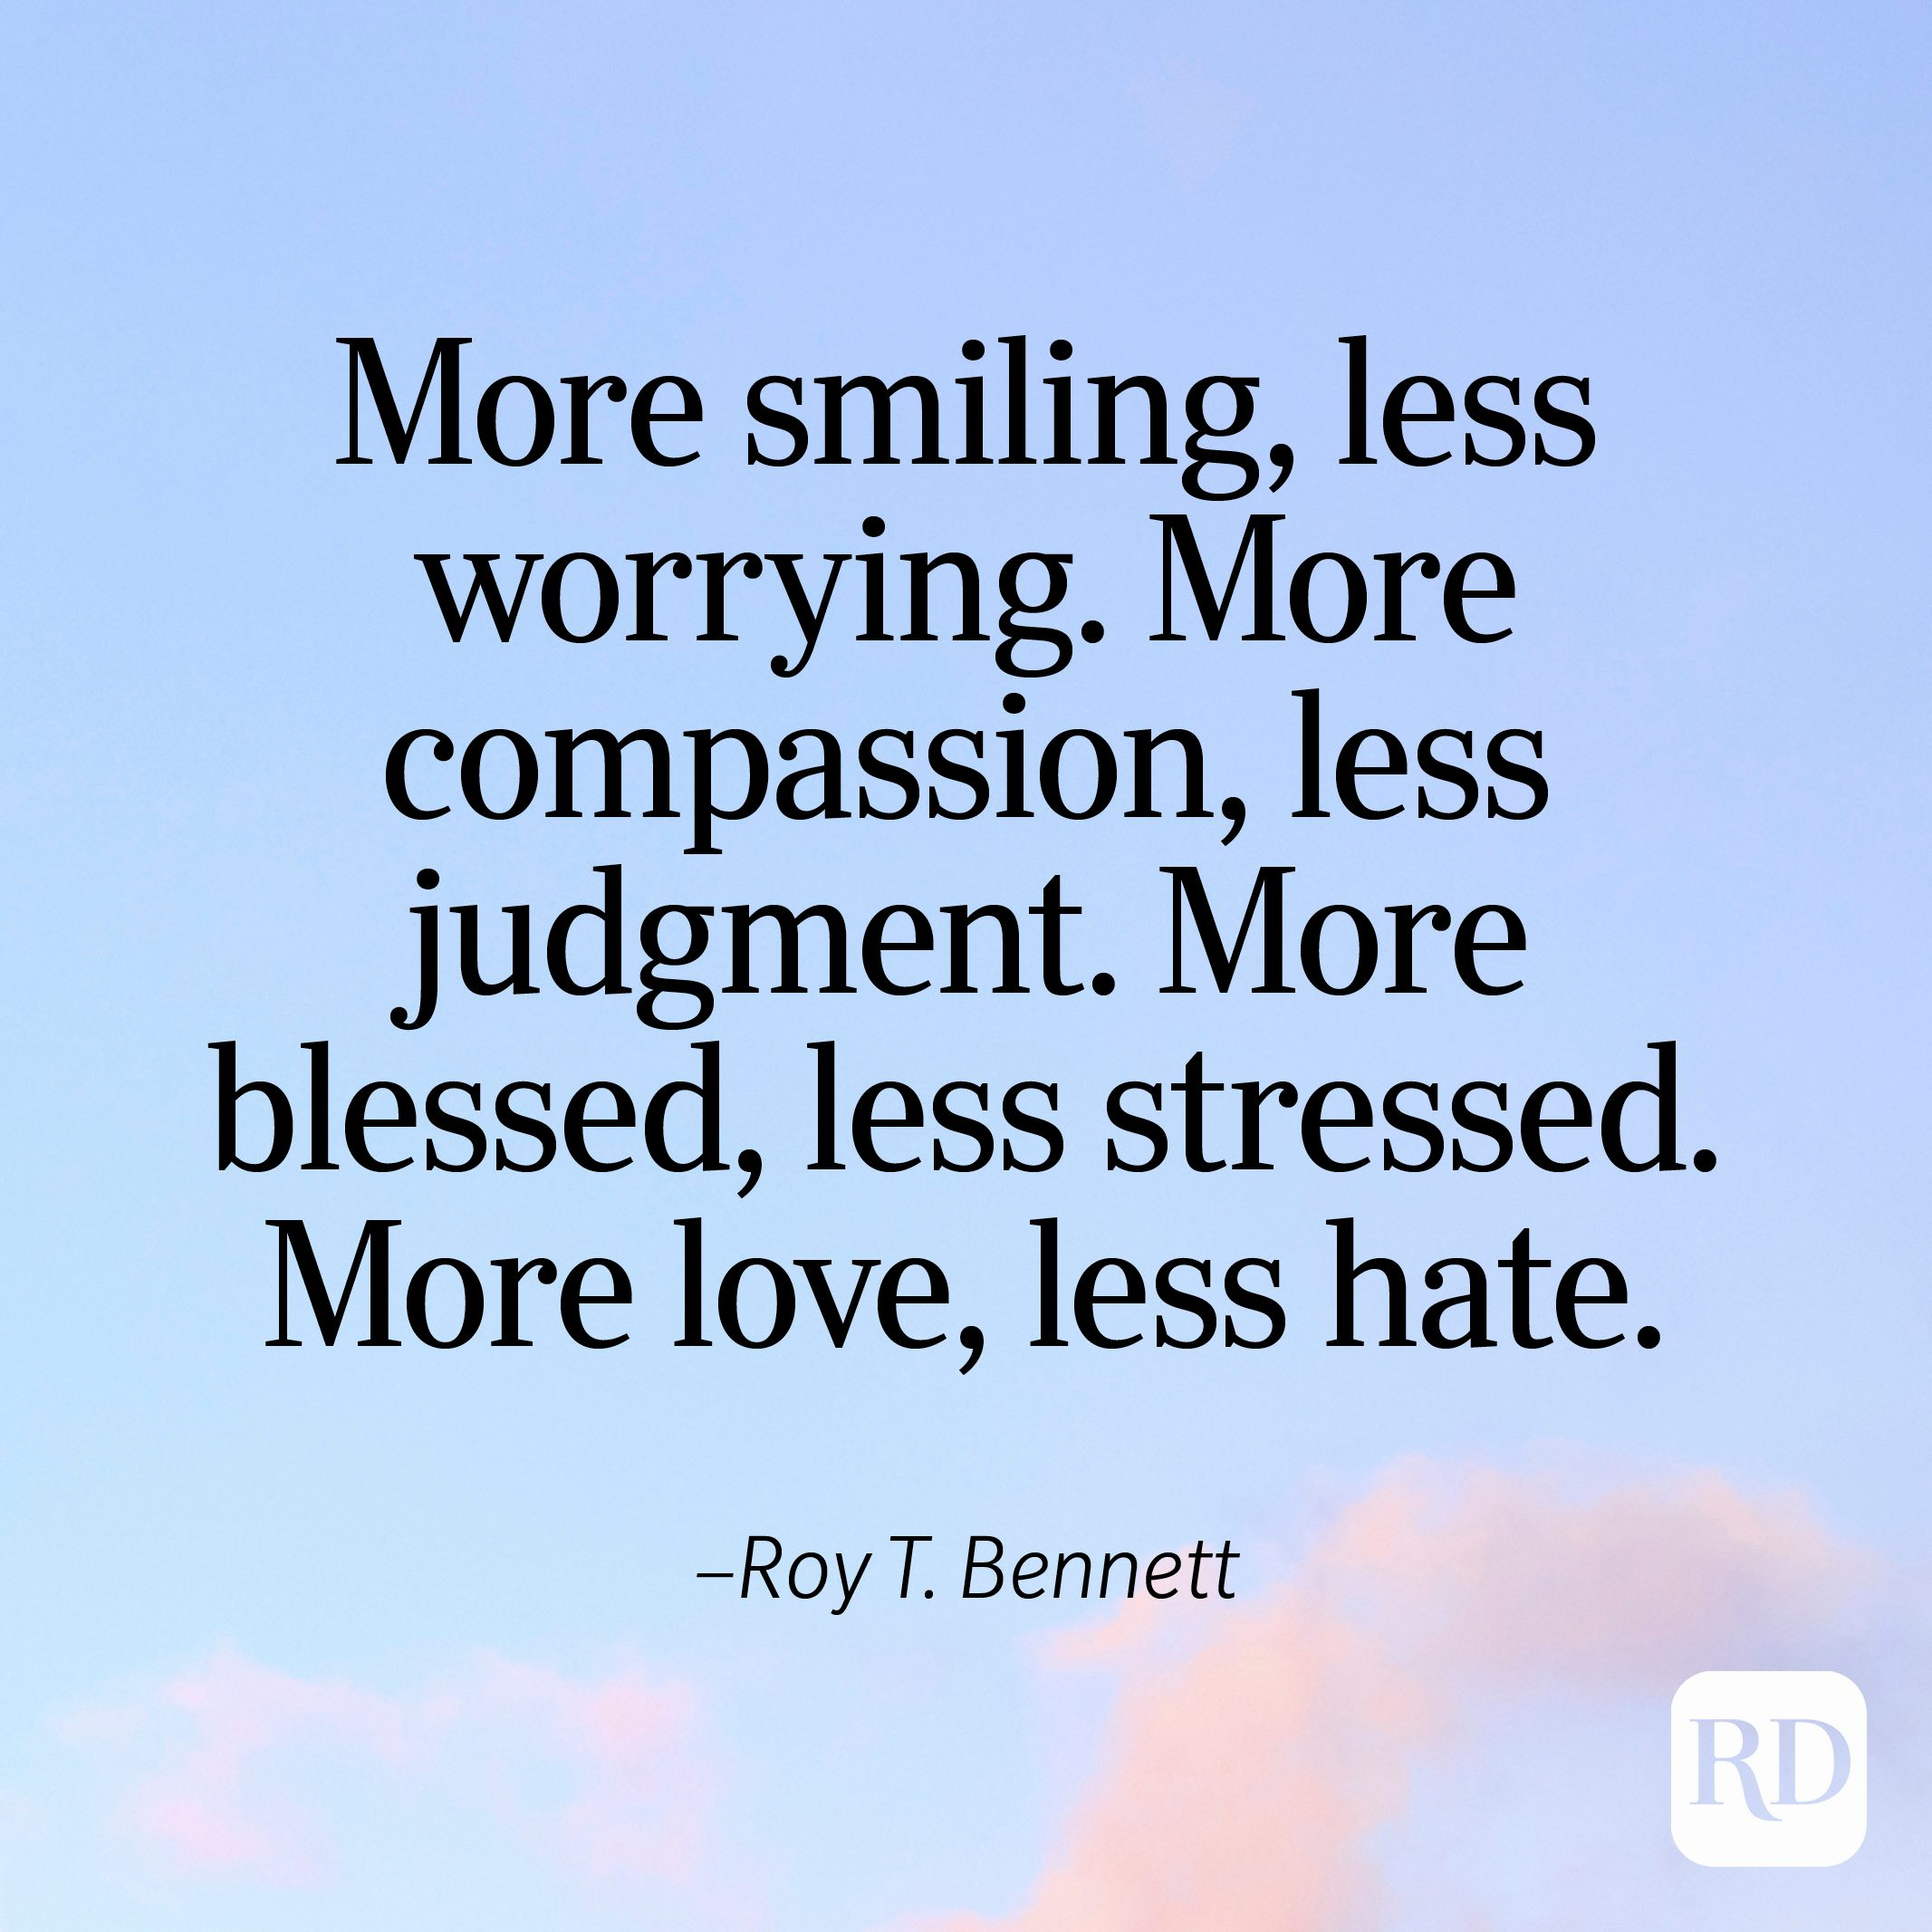 """""""More smiling, less worrying. More compassion, less judgment. More blessed, less stressed. More love, less hate."""" —Roy T. Bennett"""